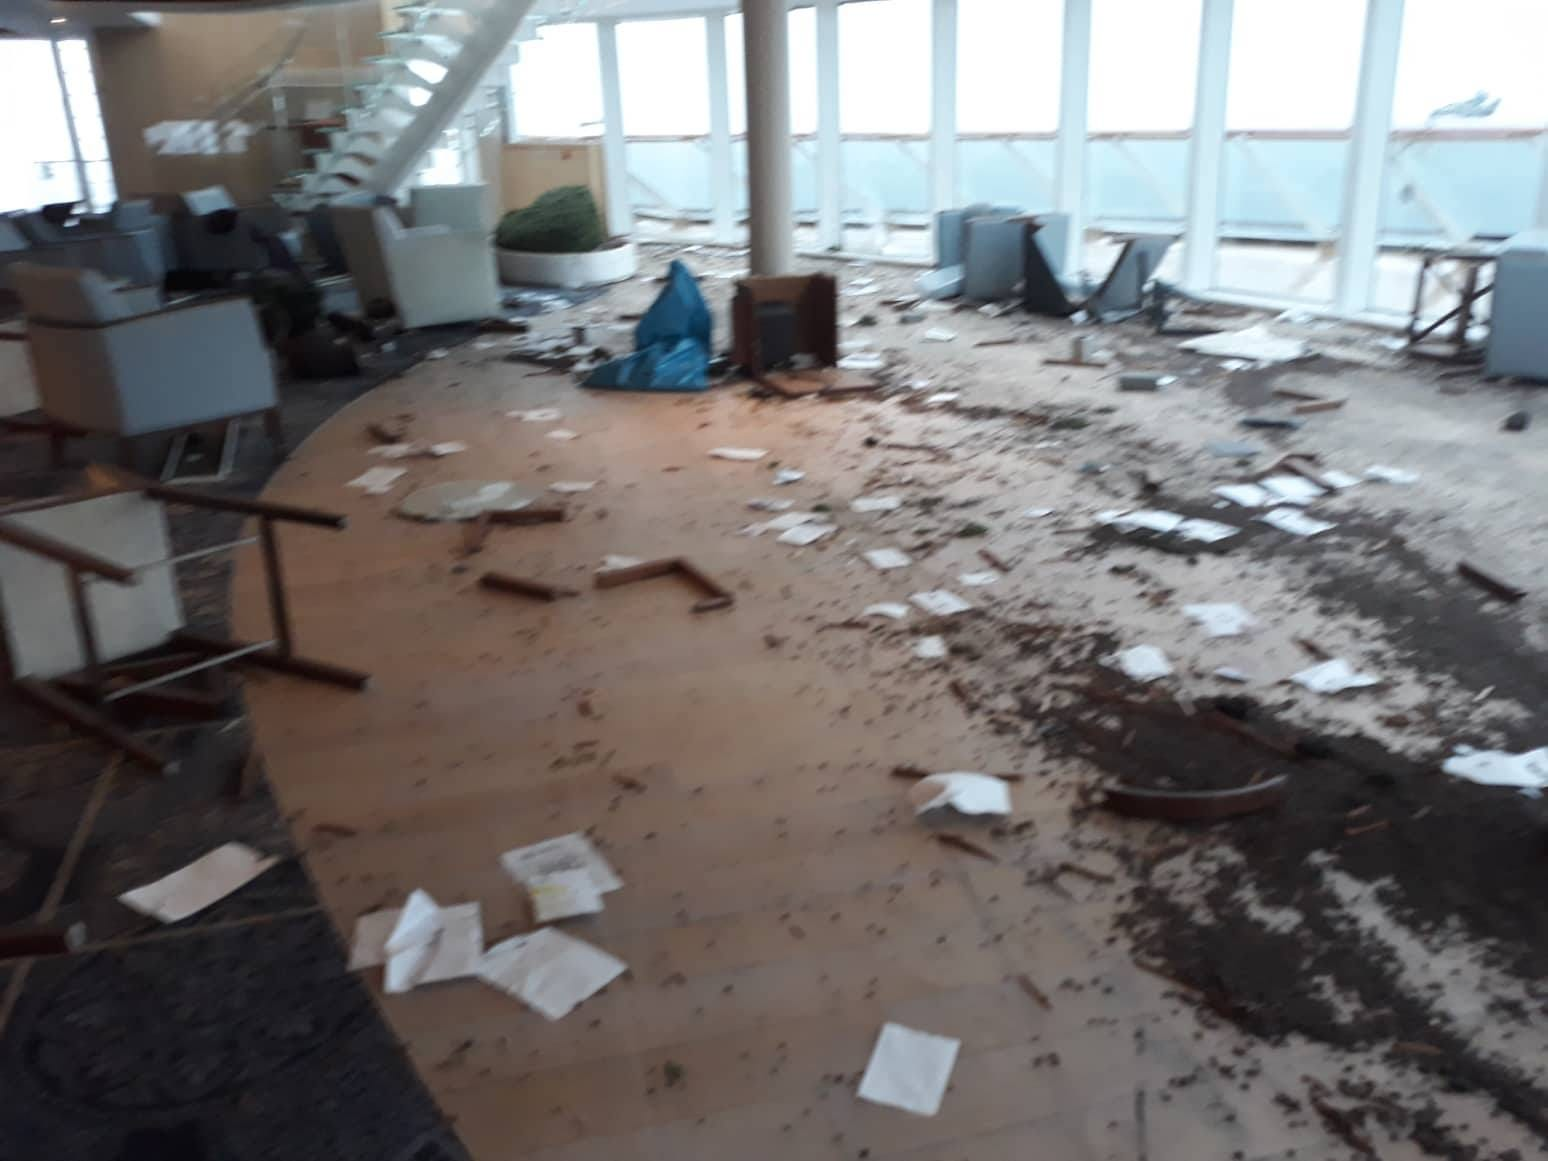 Exclusive: Crew member recounts what happened on that stranded, storm-tossed Viking Sky cruise ship